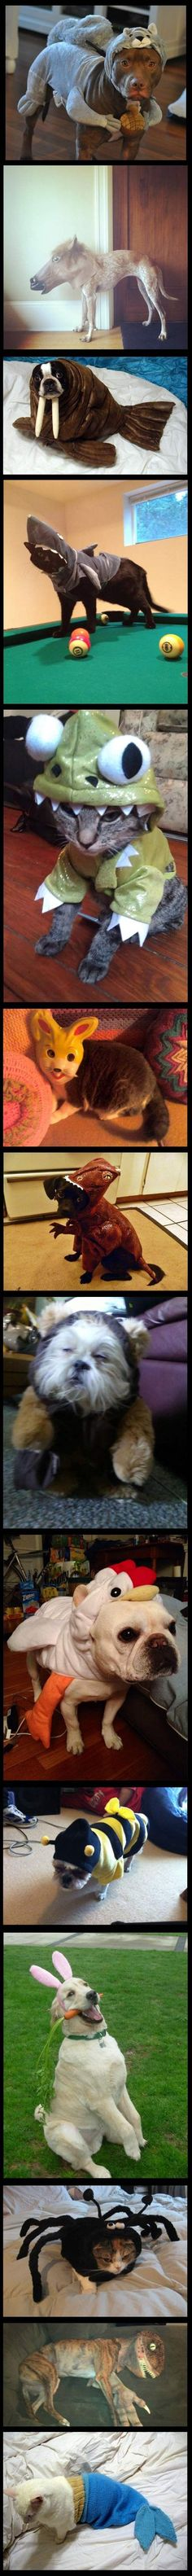 LOL - Animals dressed as other animals - www.funny-pictures-blog.com